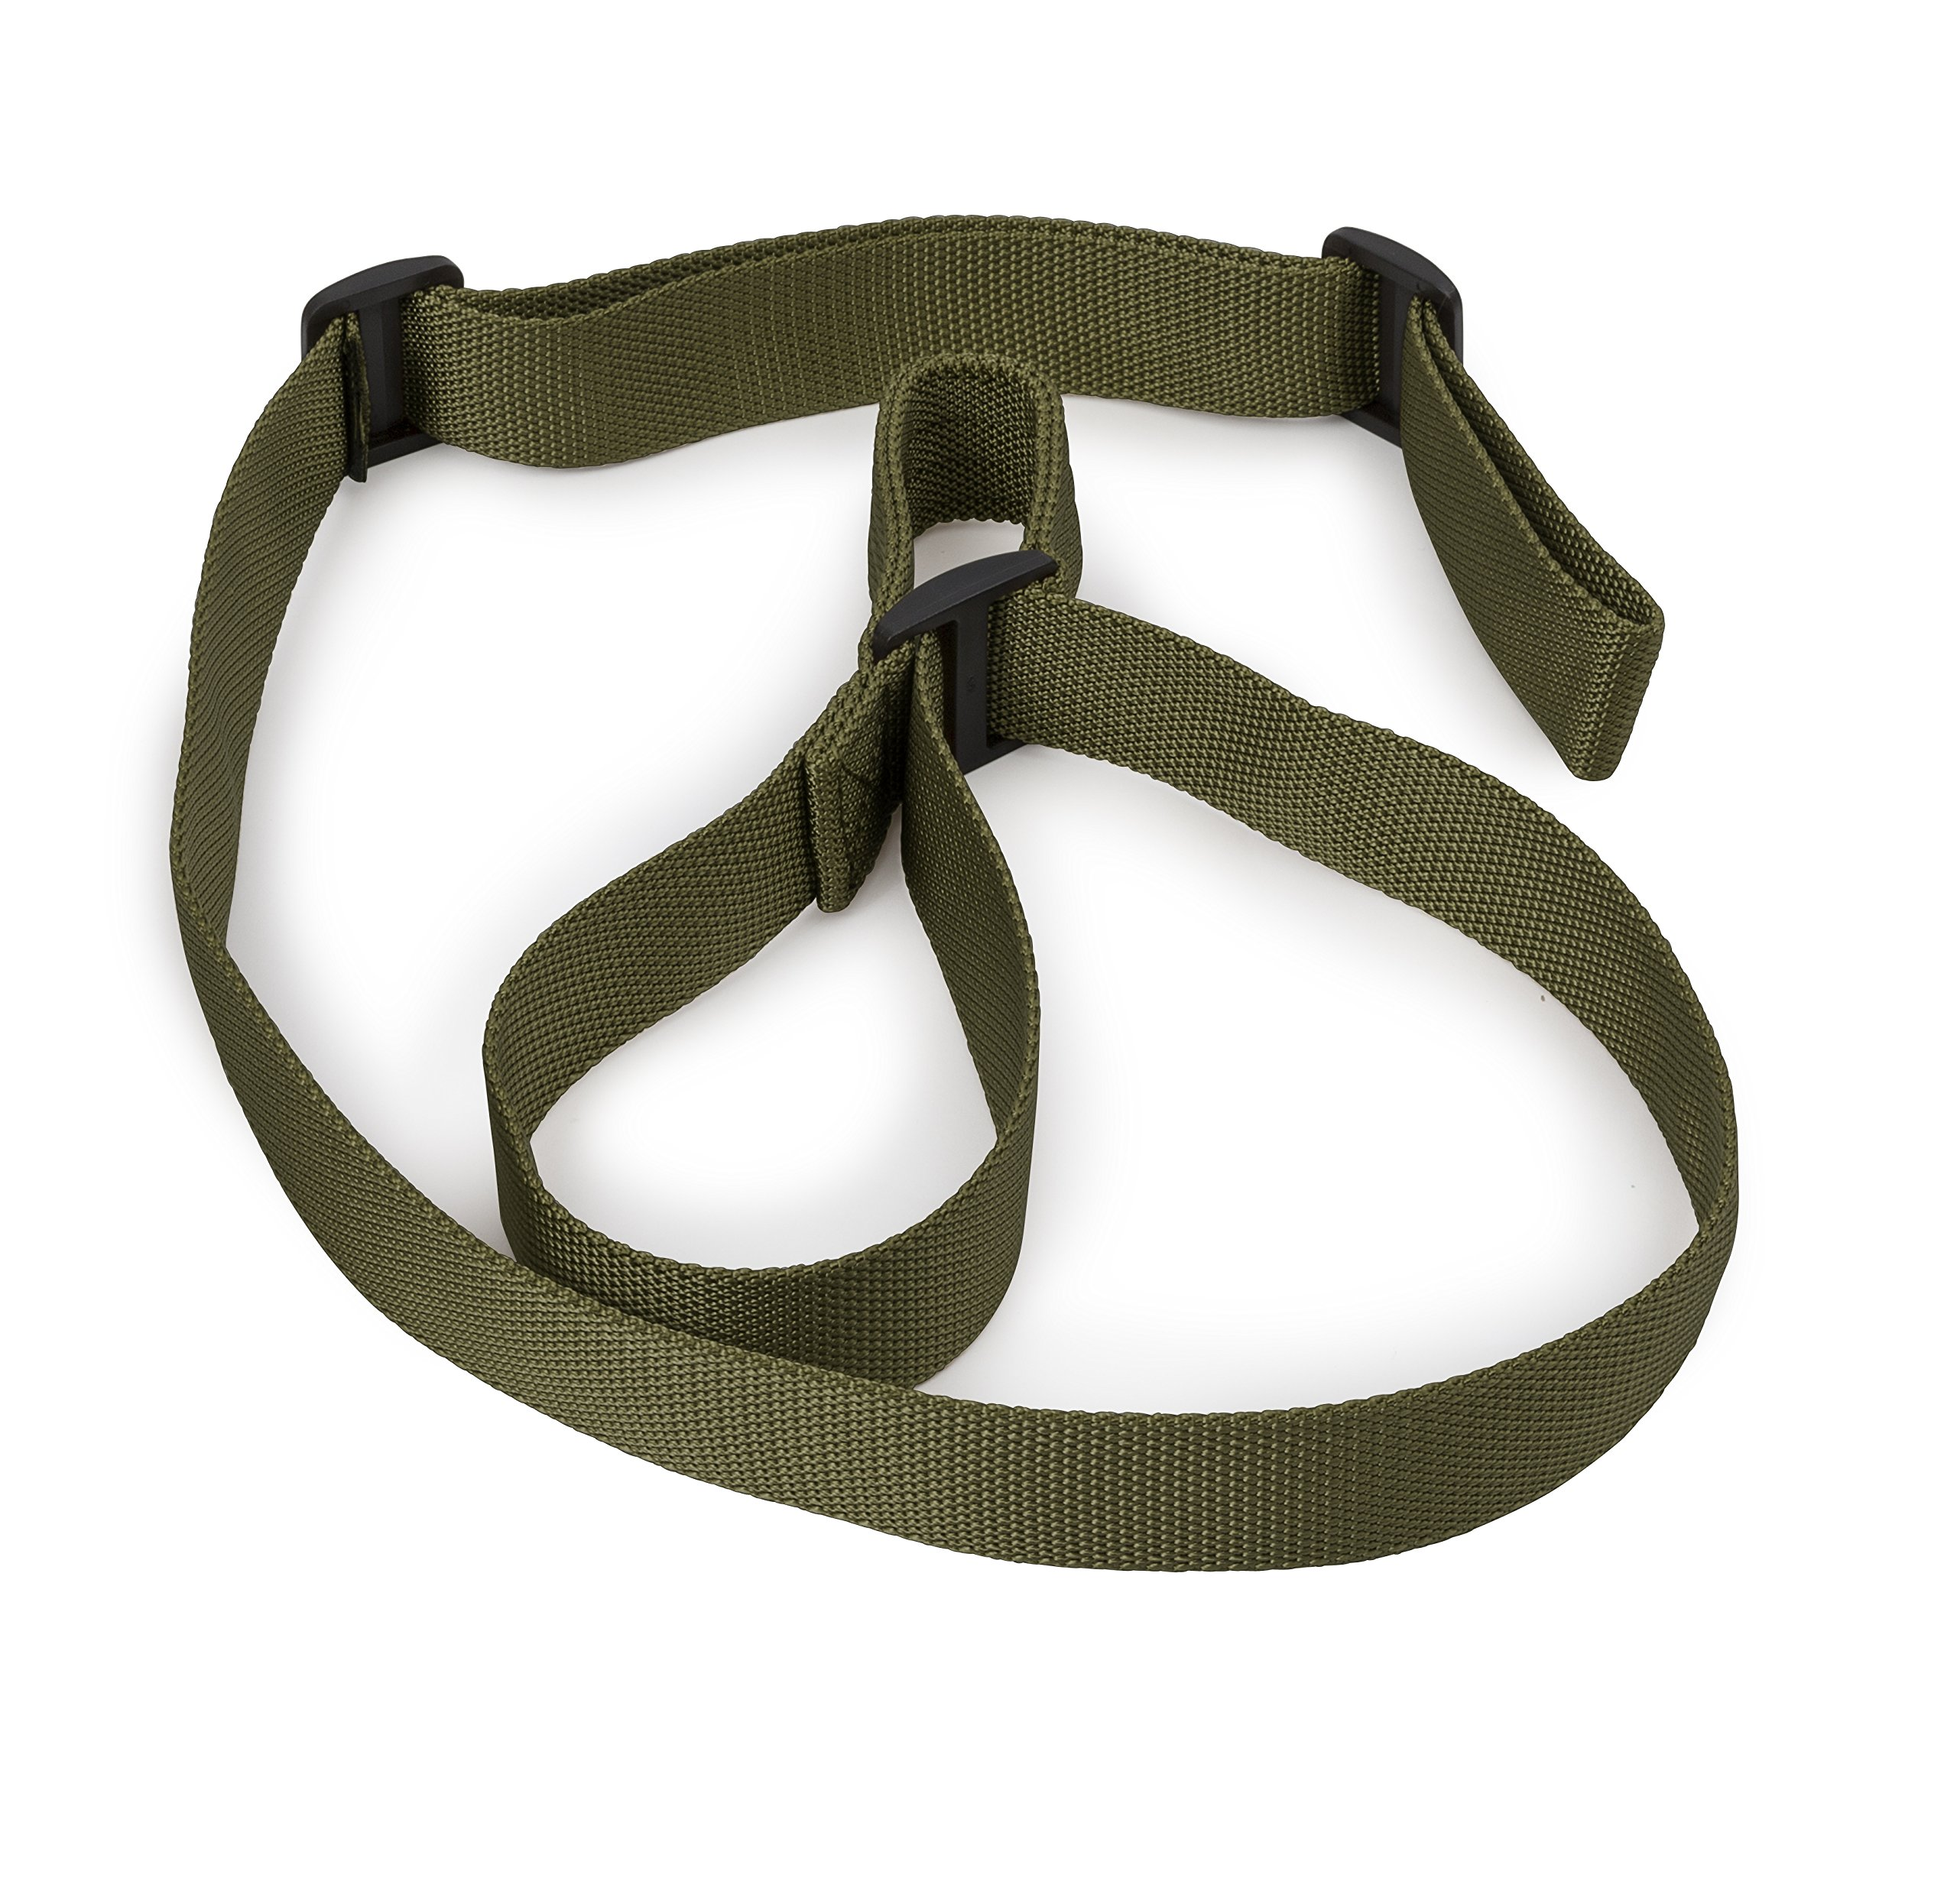 STI 2 Point Rifle Sling - Adjustable Gun Sling with FAST-LOOP and 1.25 inch Webbing for Hunting Sports and Outdoors (GI Green/Hunter Green) by STI